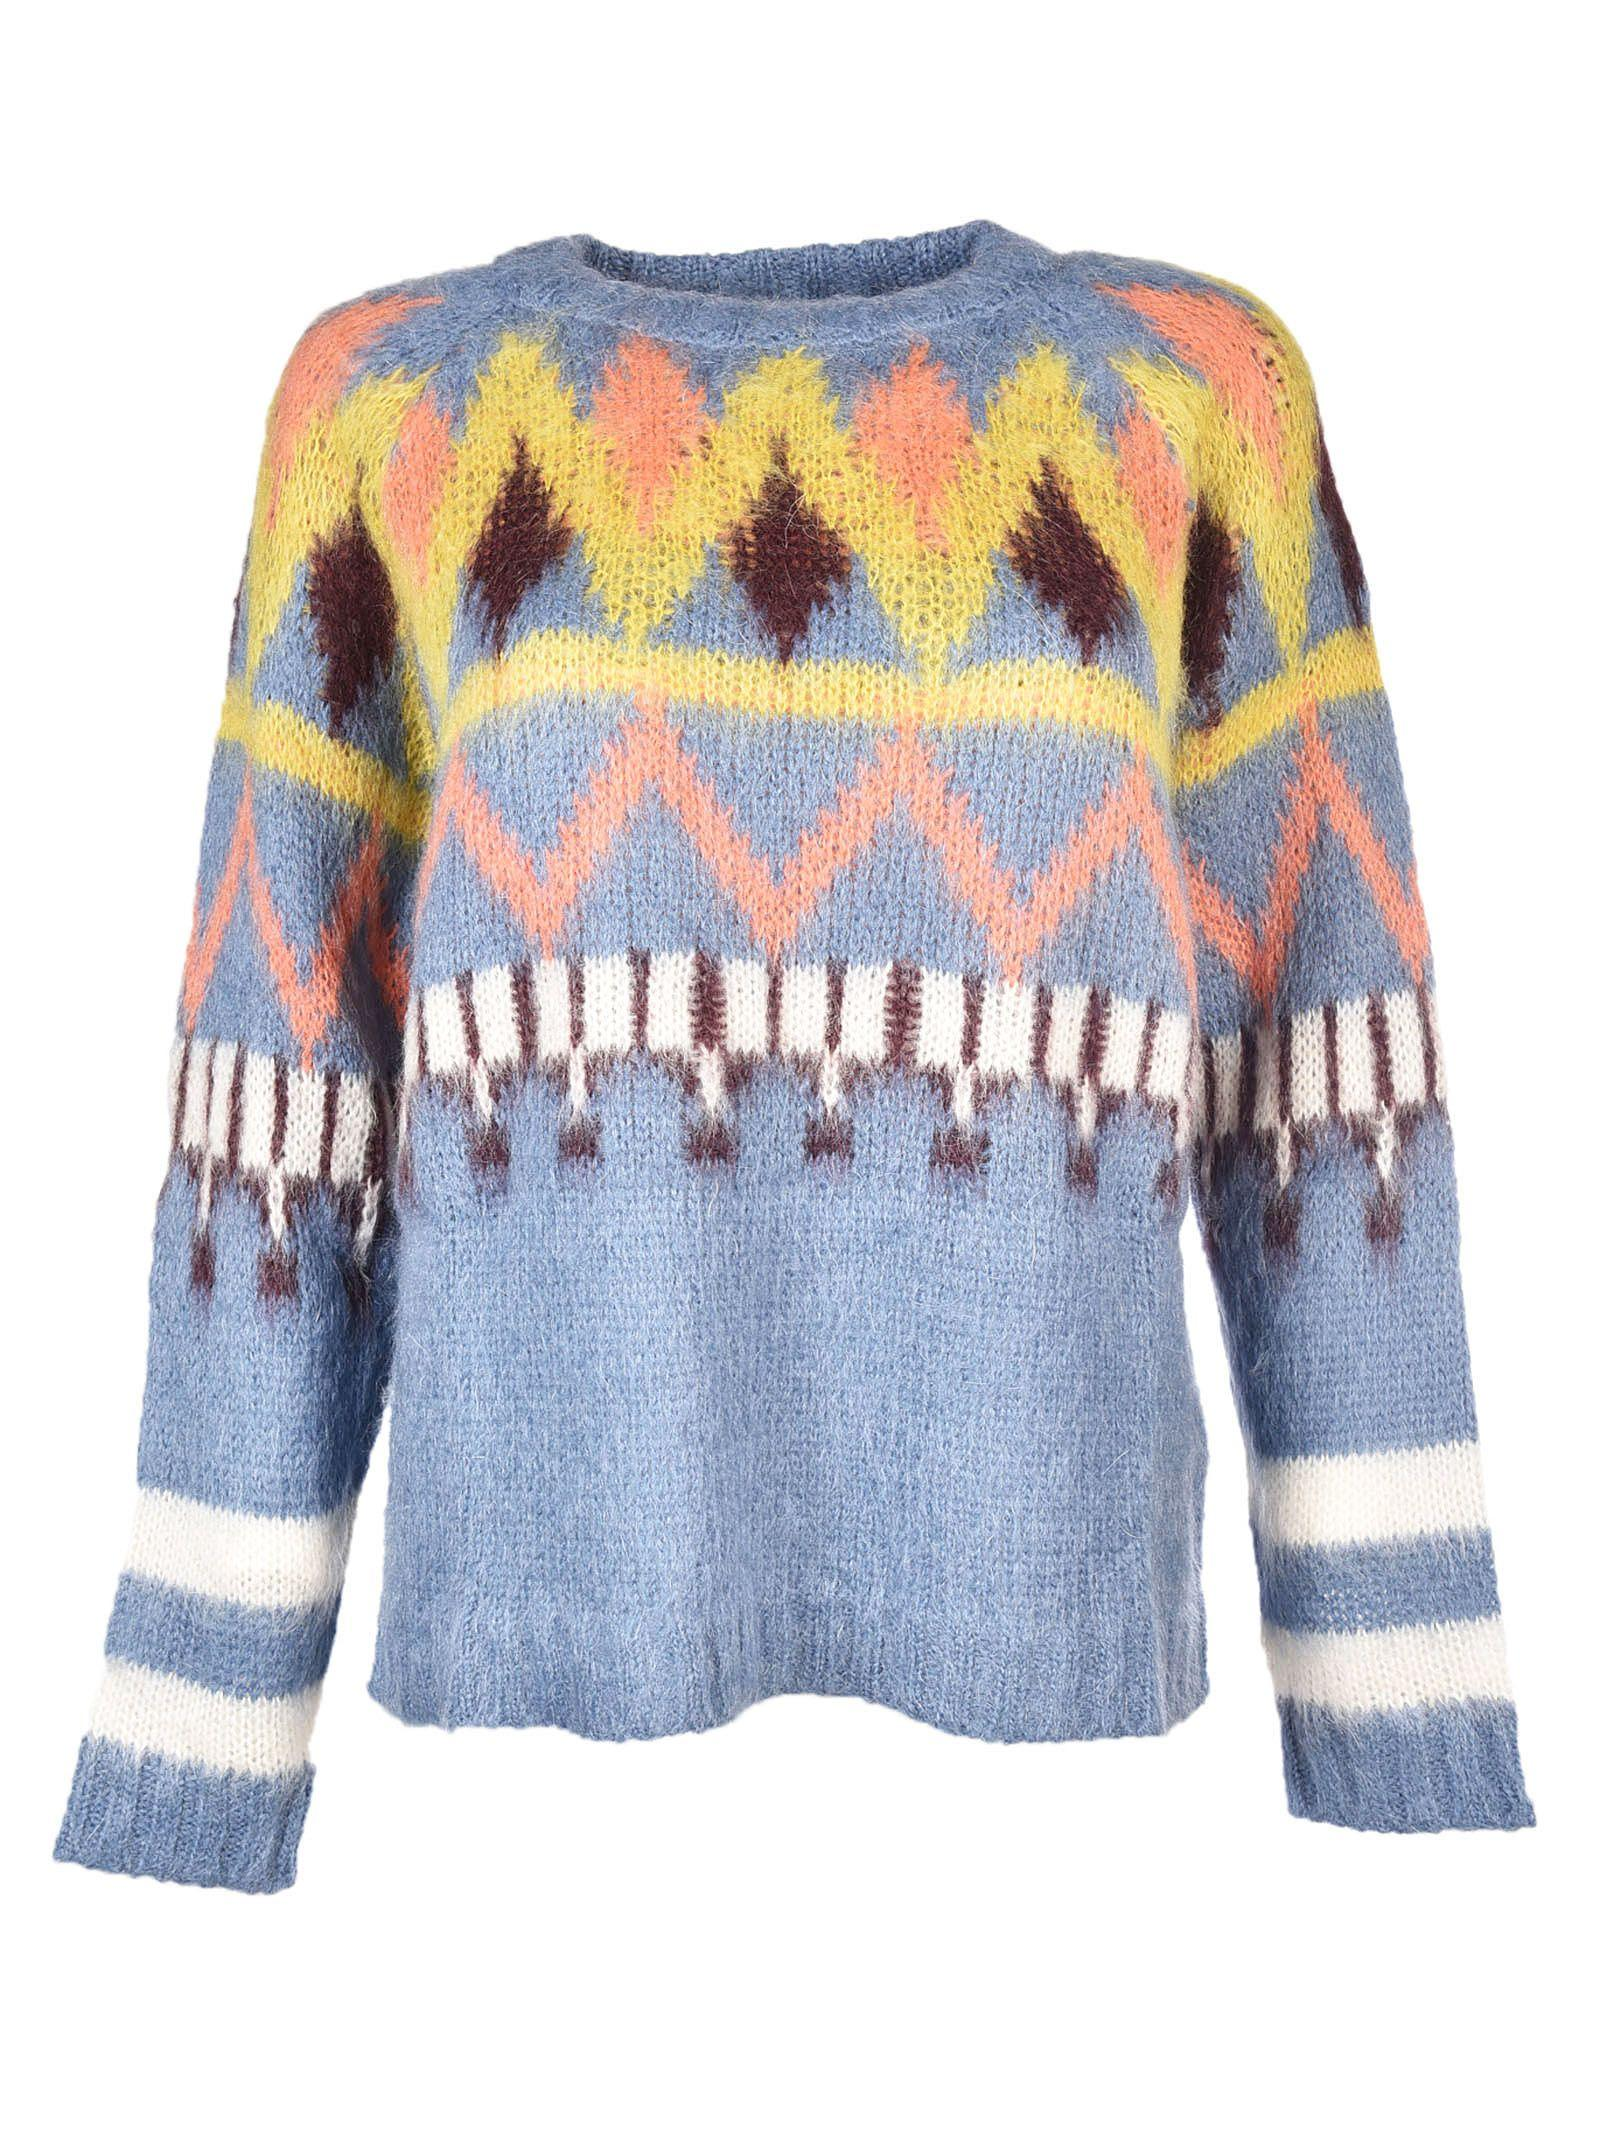 8pm Crewneck Knit Pullover In Blue-multicolor